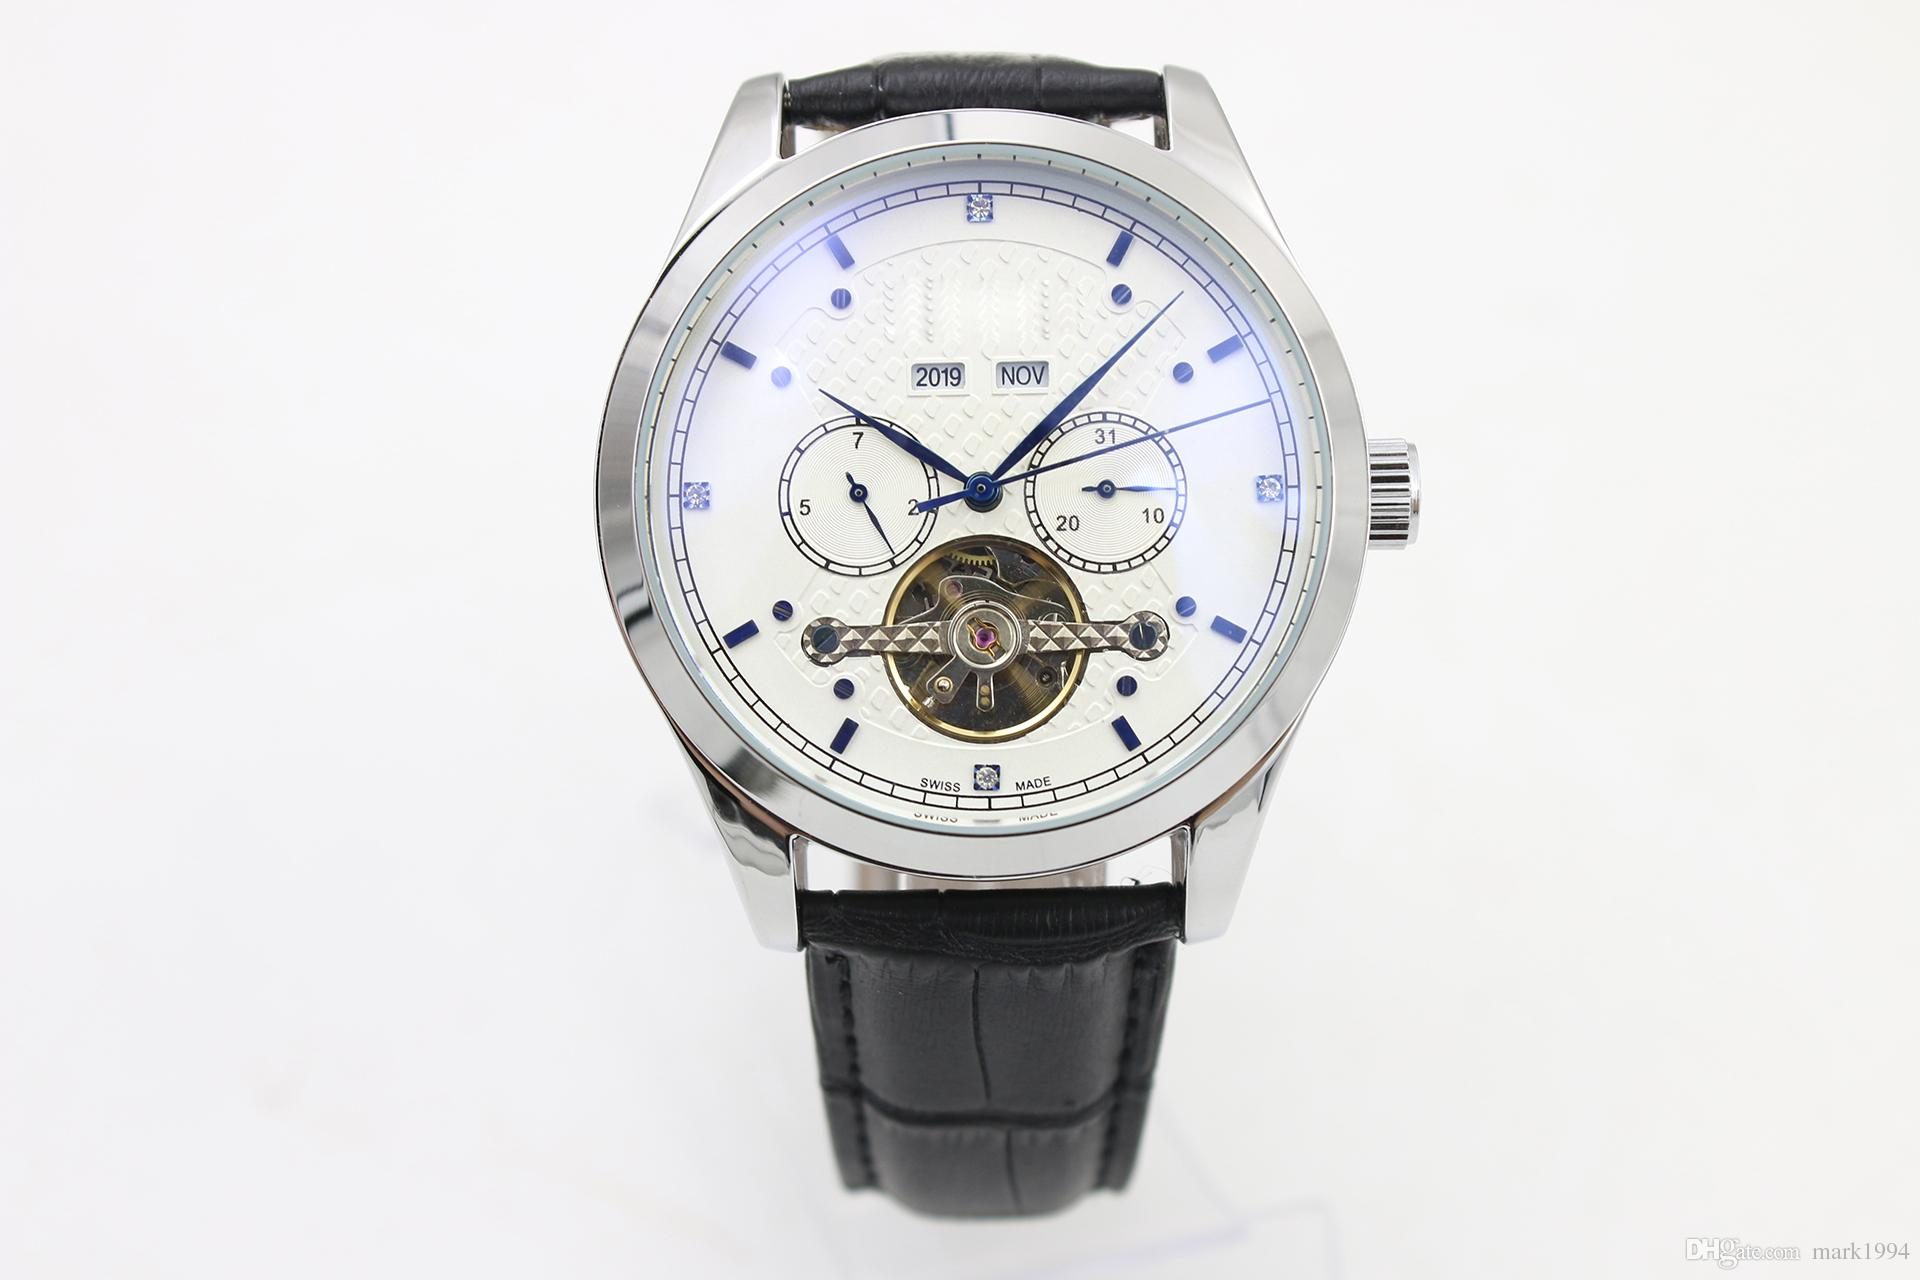 watches hublot mdm aaa ubingles pd geneve quartz china wholesaler classic quality